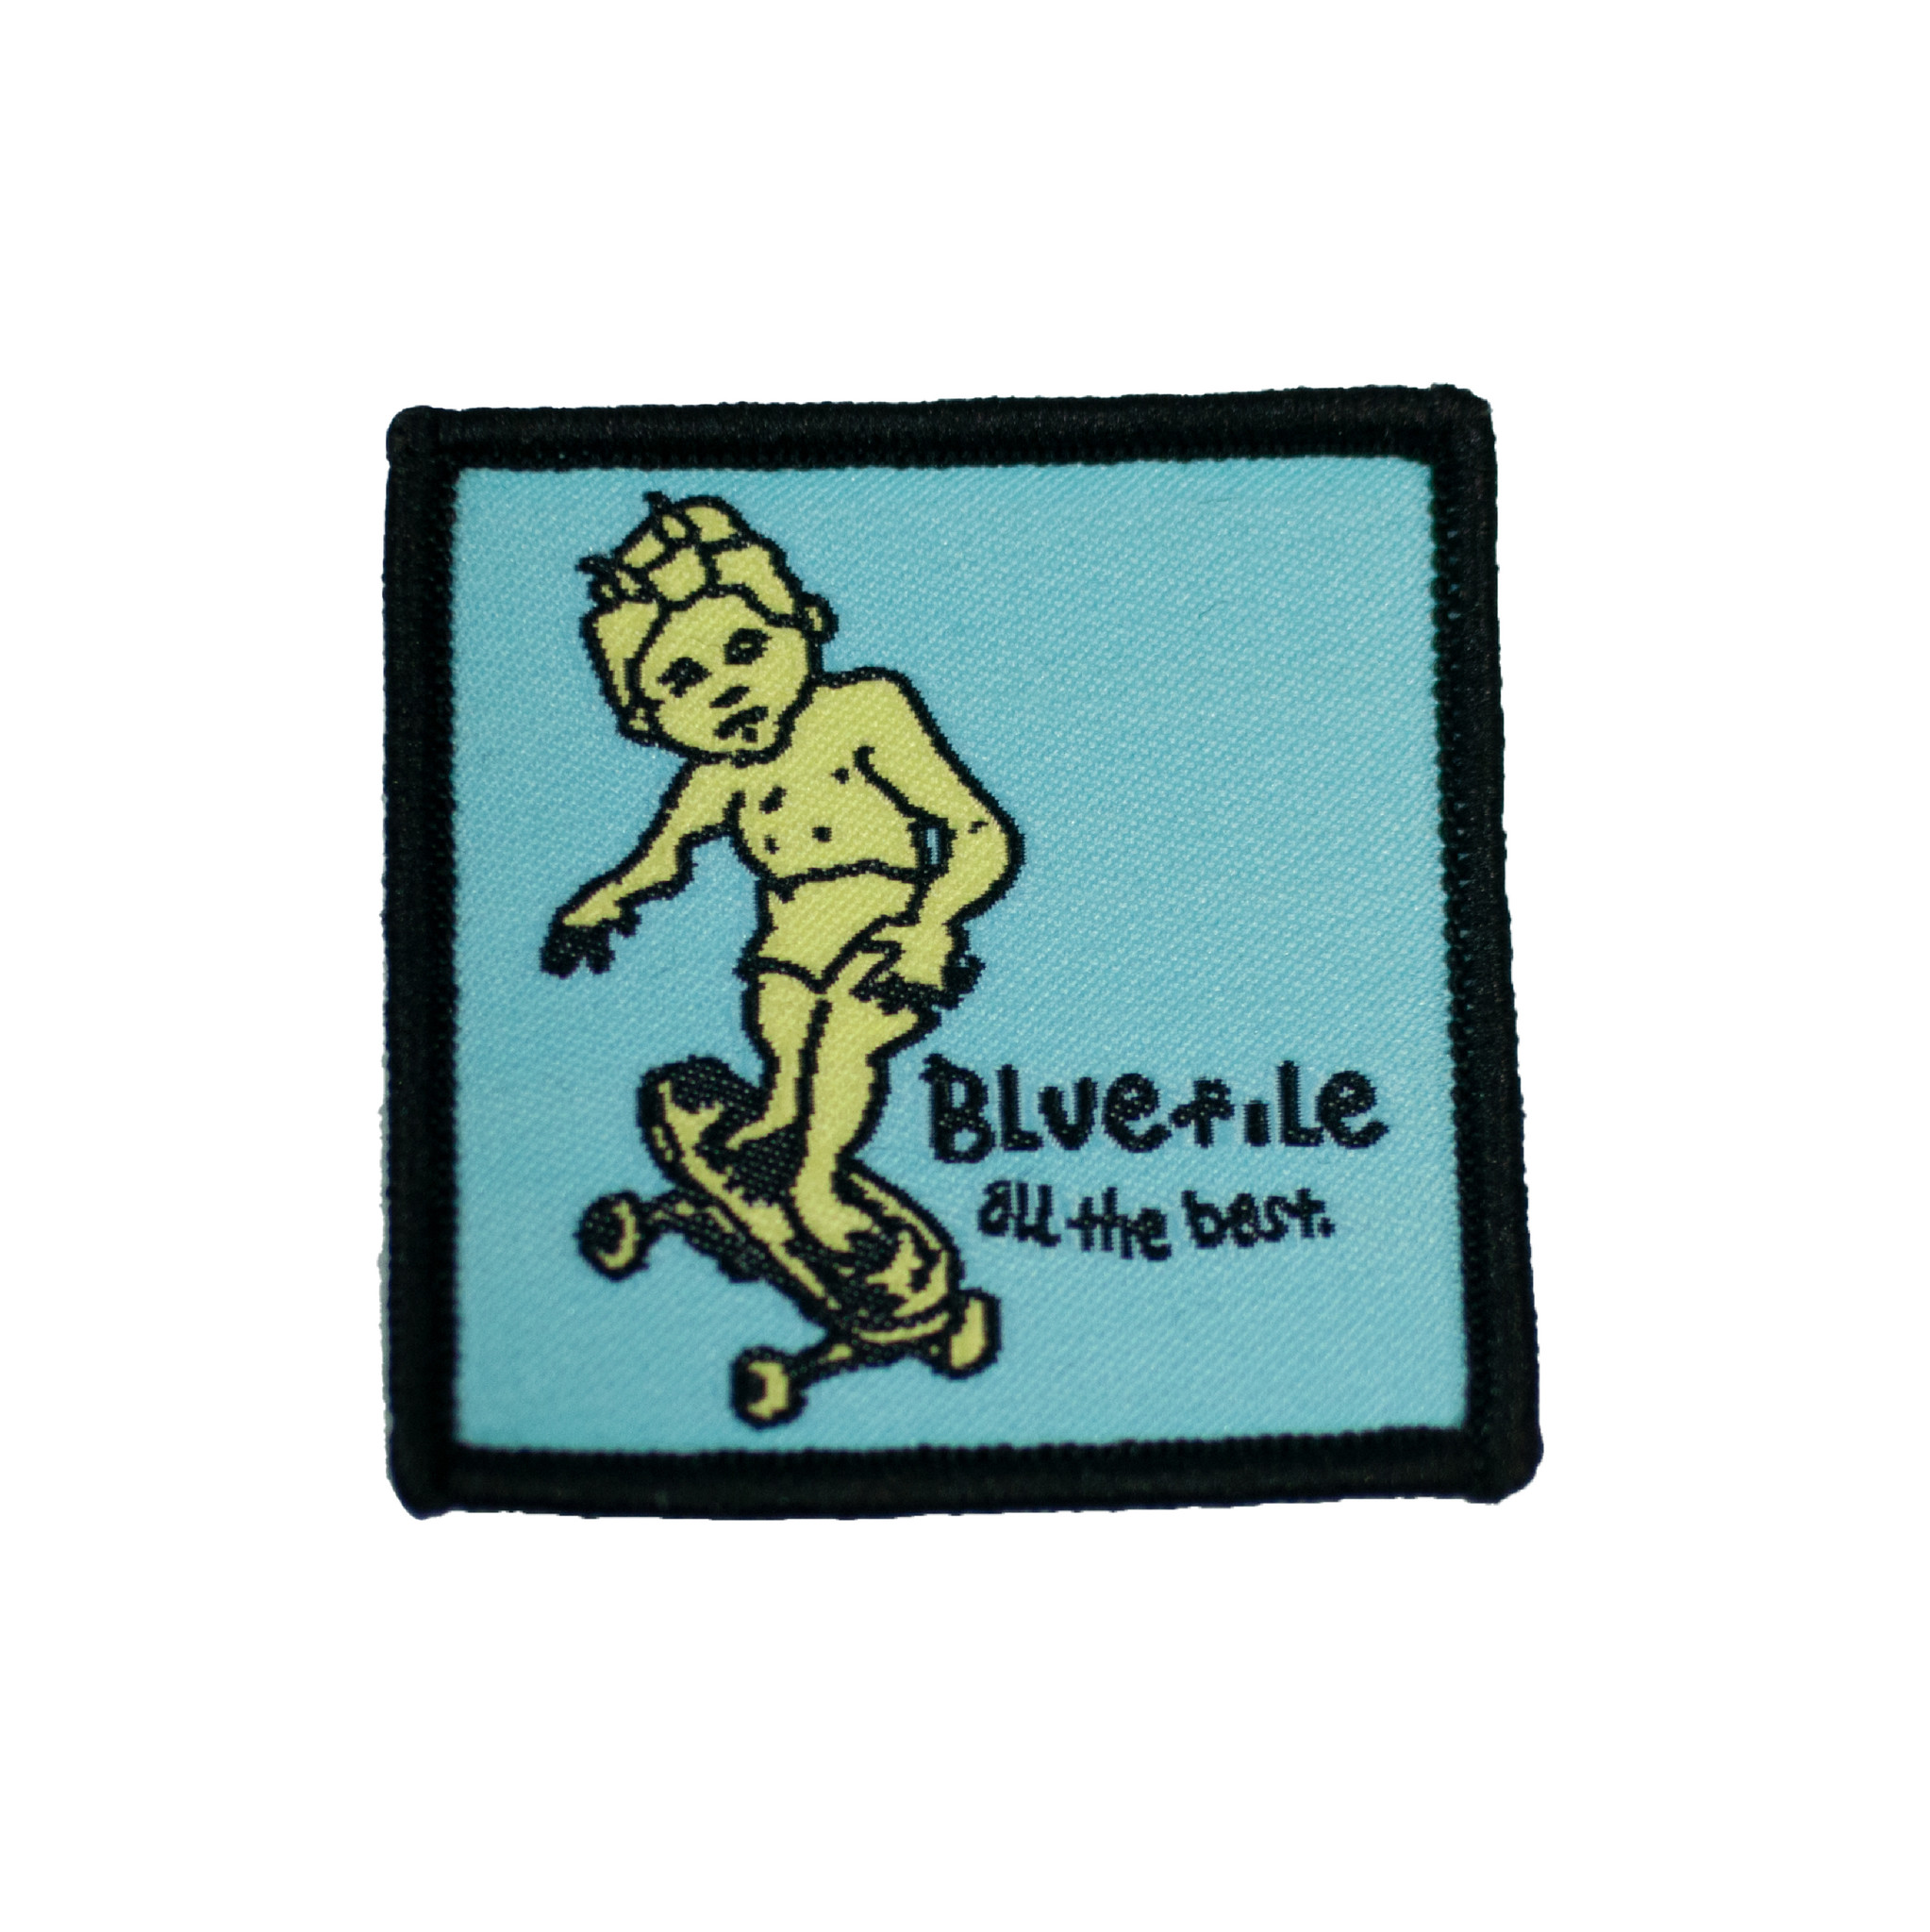 BLUETILE BLUETILE SKETCHY GONZ PATCH